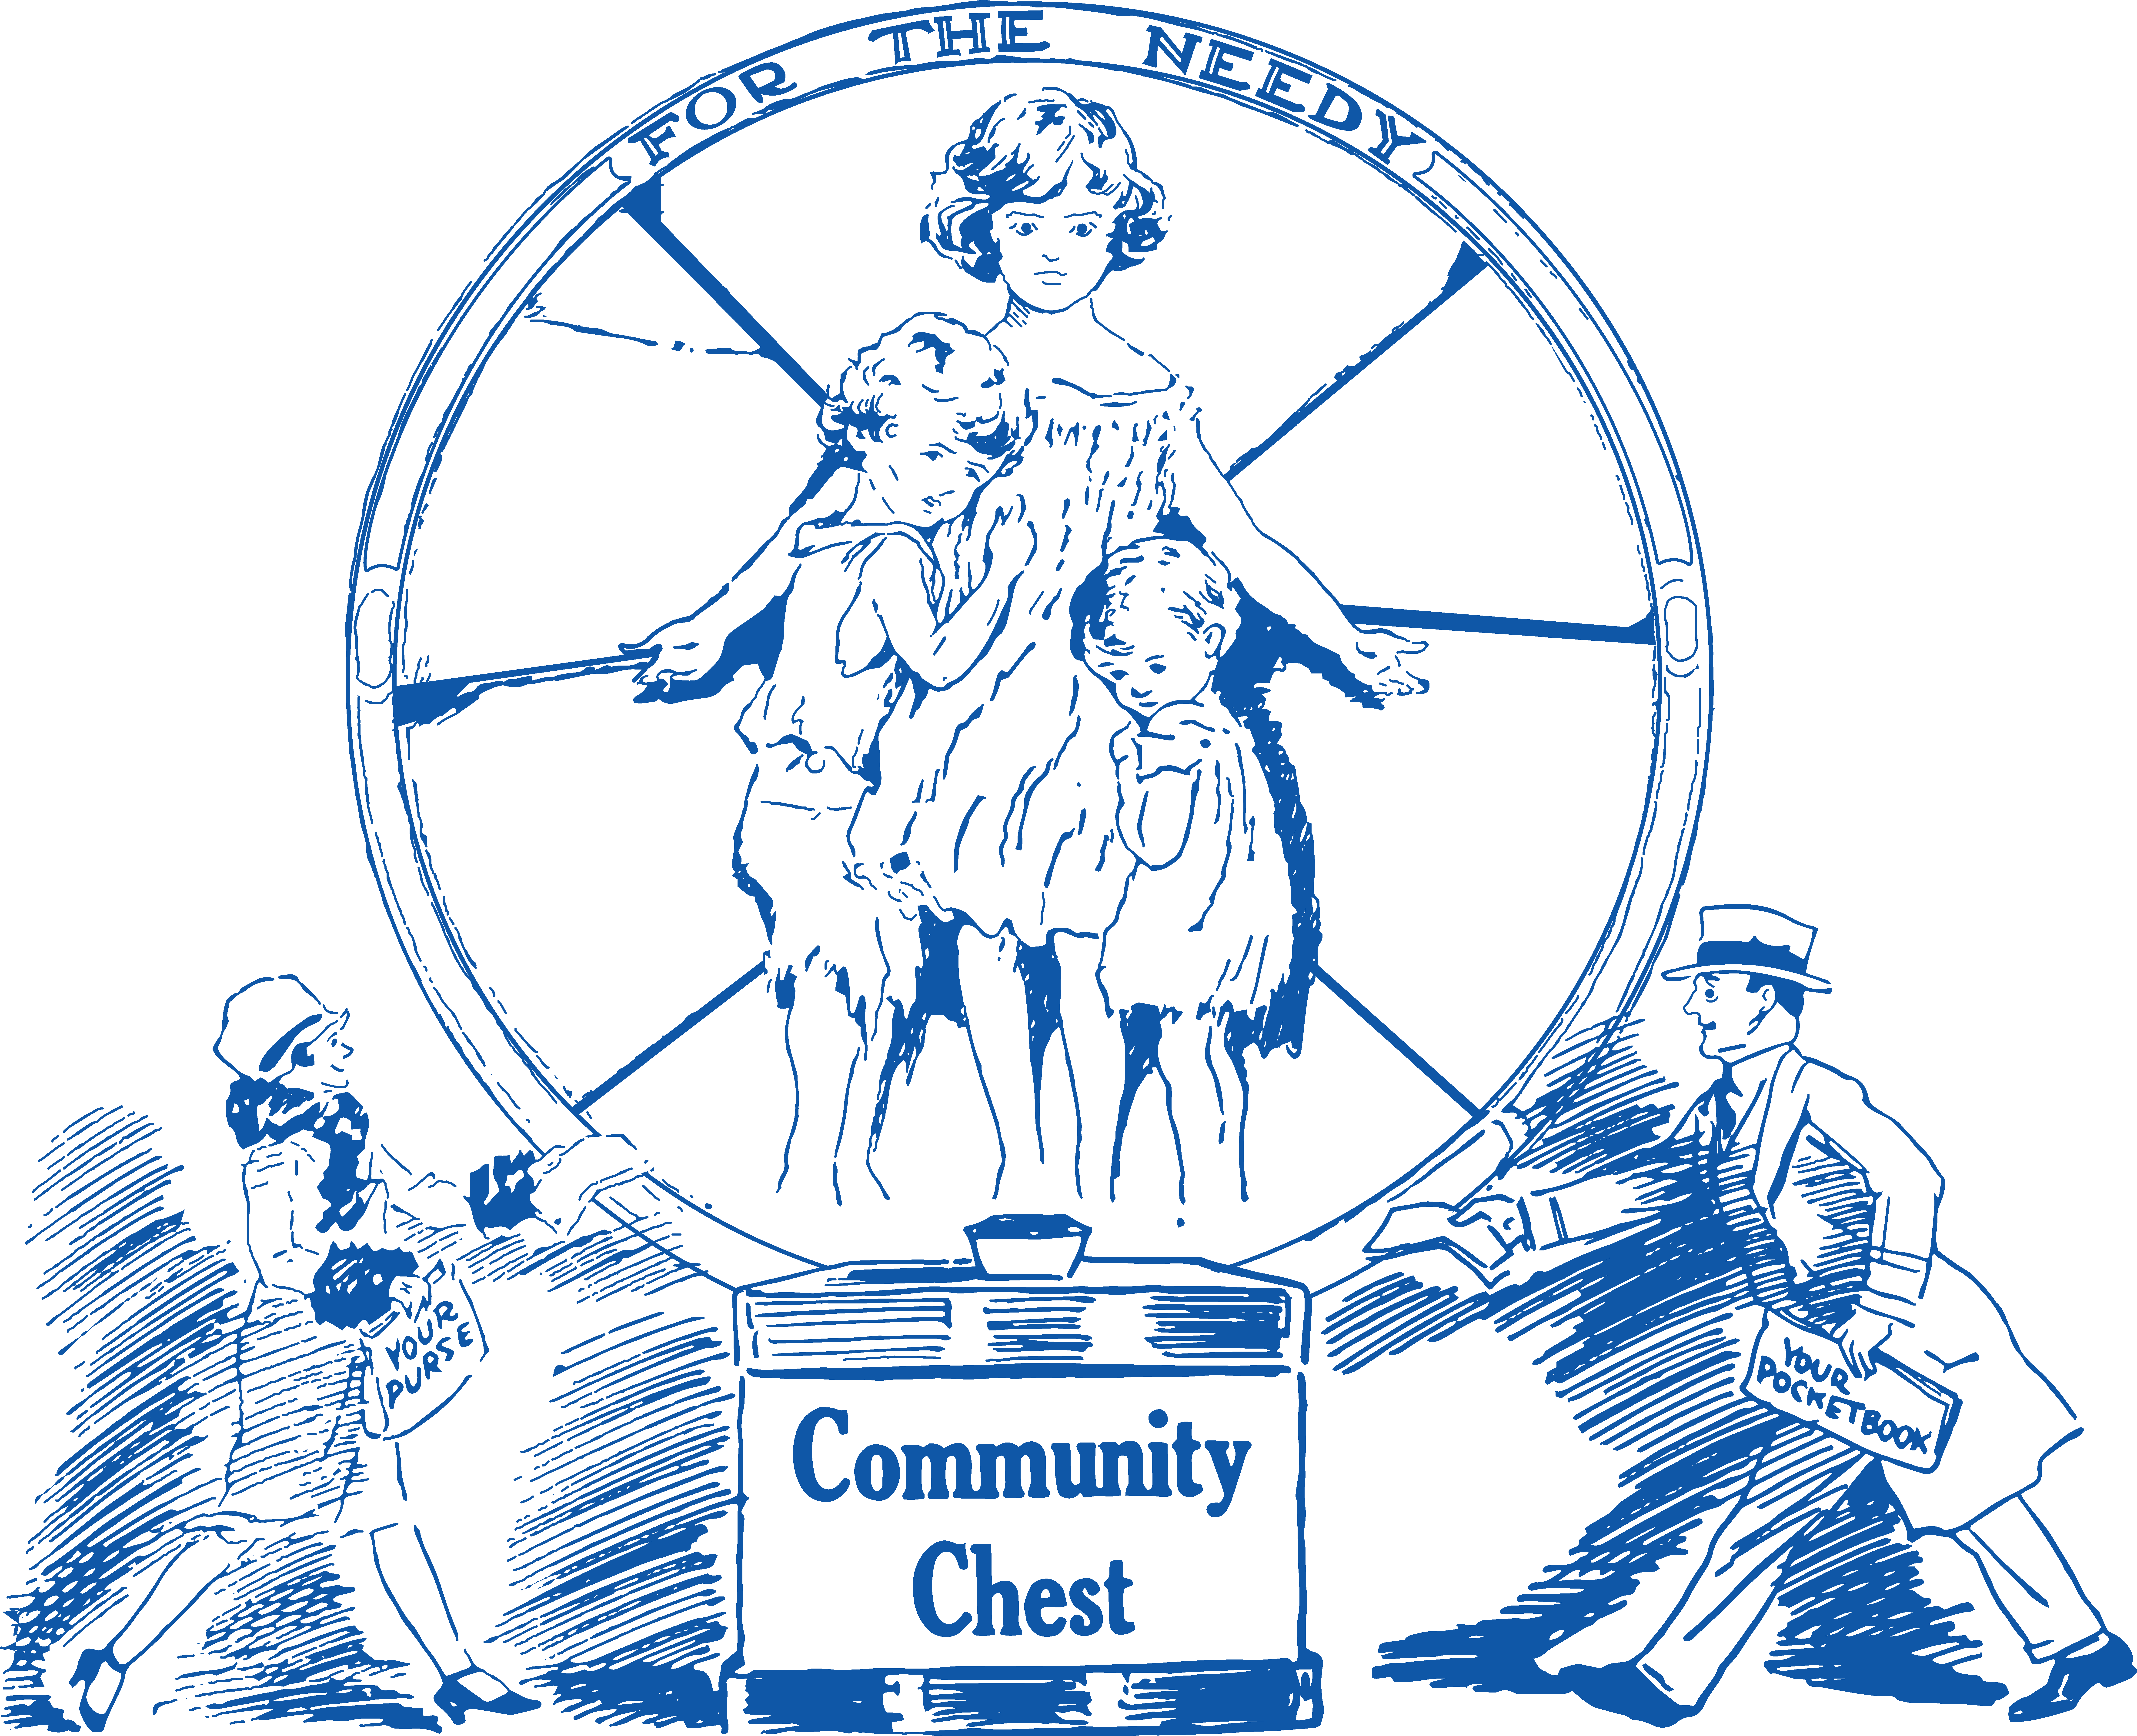 Digital restoration of a drawing used in the Springfield Community Chest campaign, originally by Jessie Wilcox Smith, c. 1928.